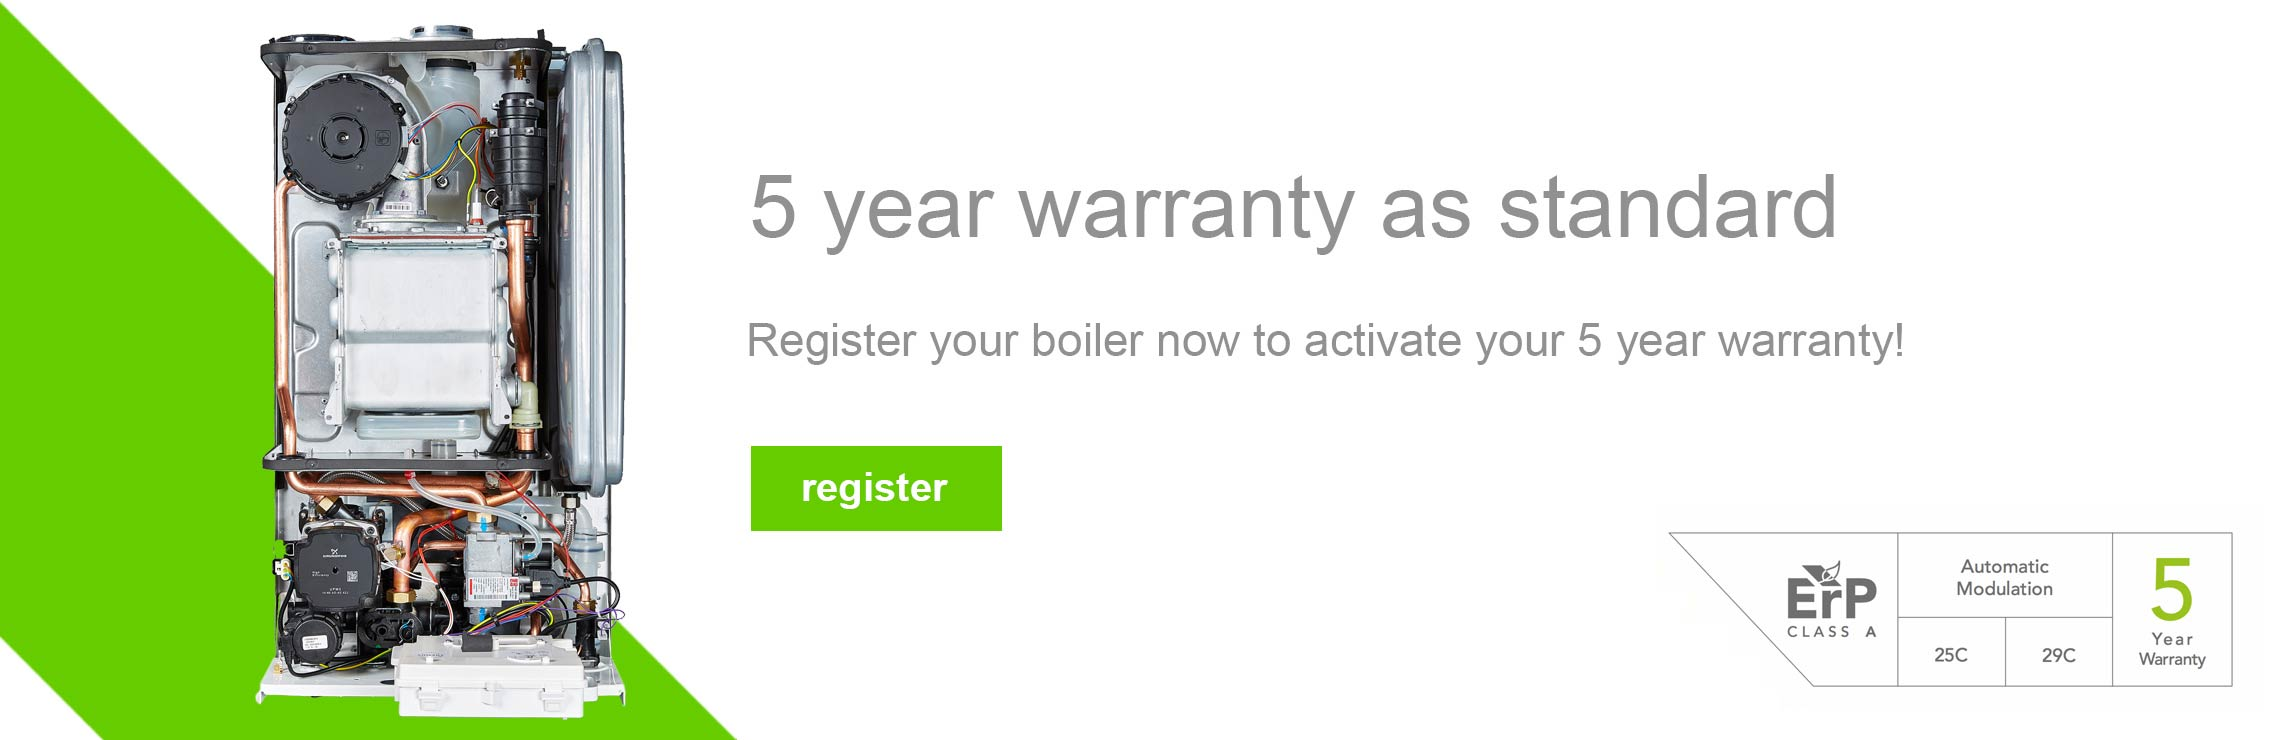 5 year warranty as standard